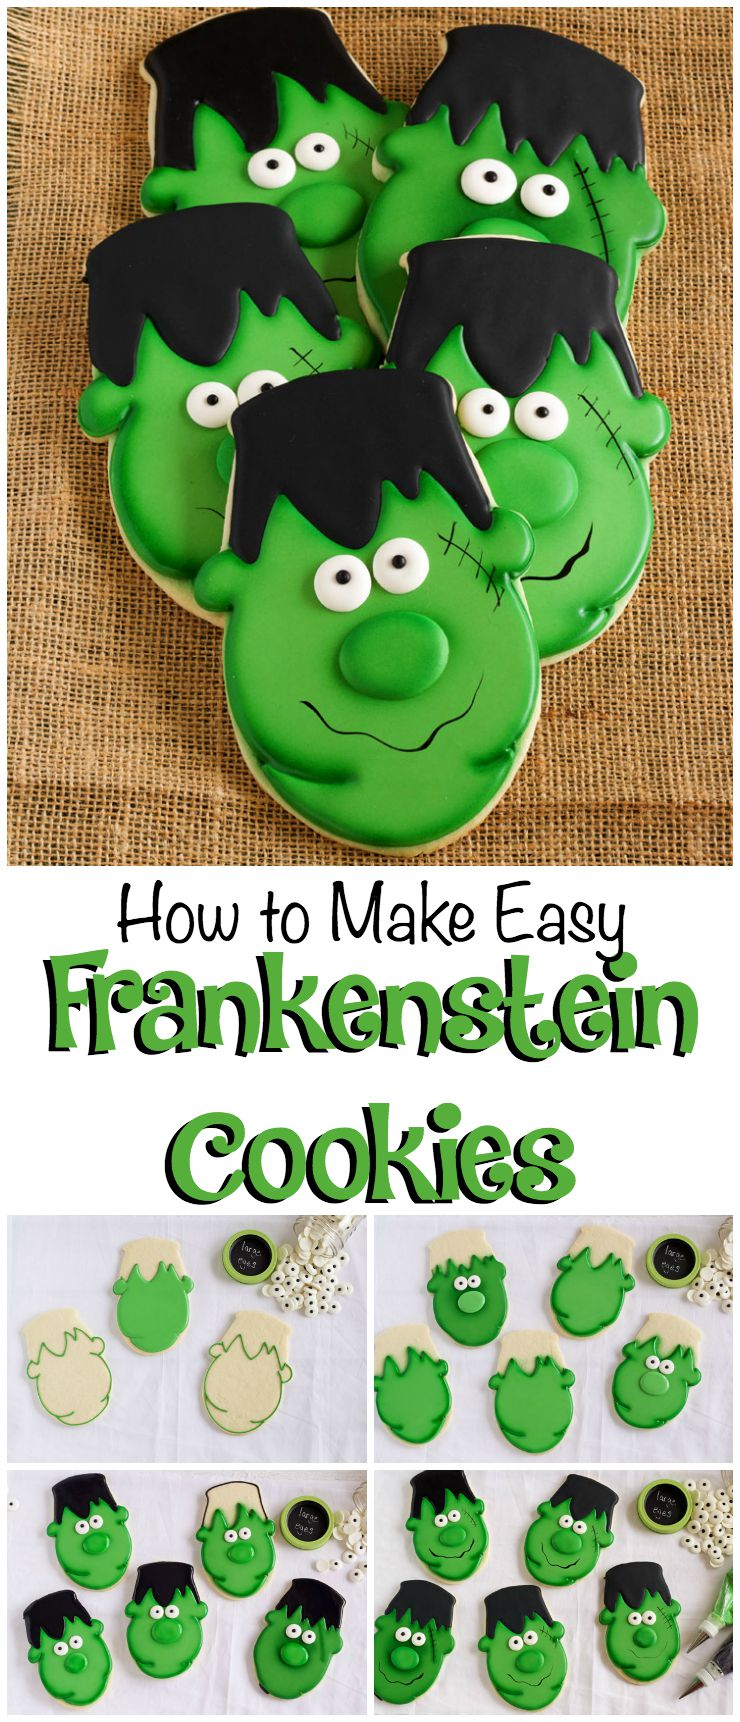 How to Make Easy Frankenstein Cookies via www.thebearfootbaker.com